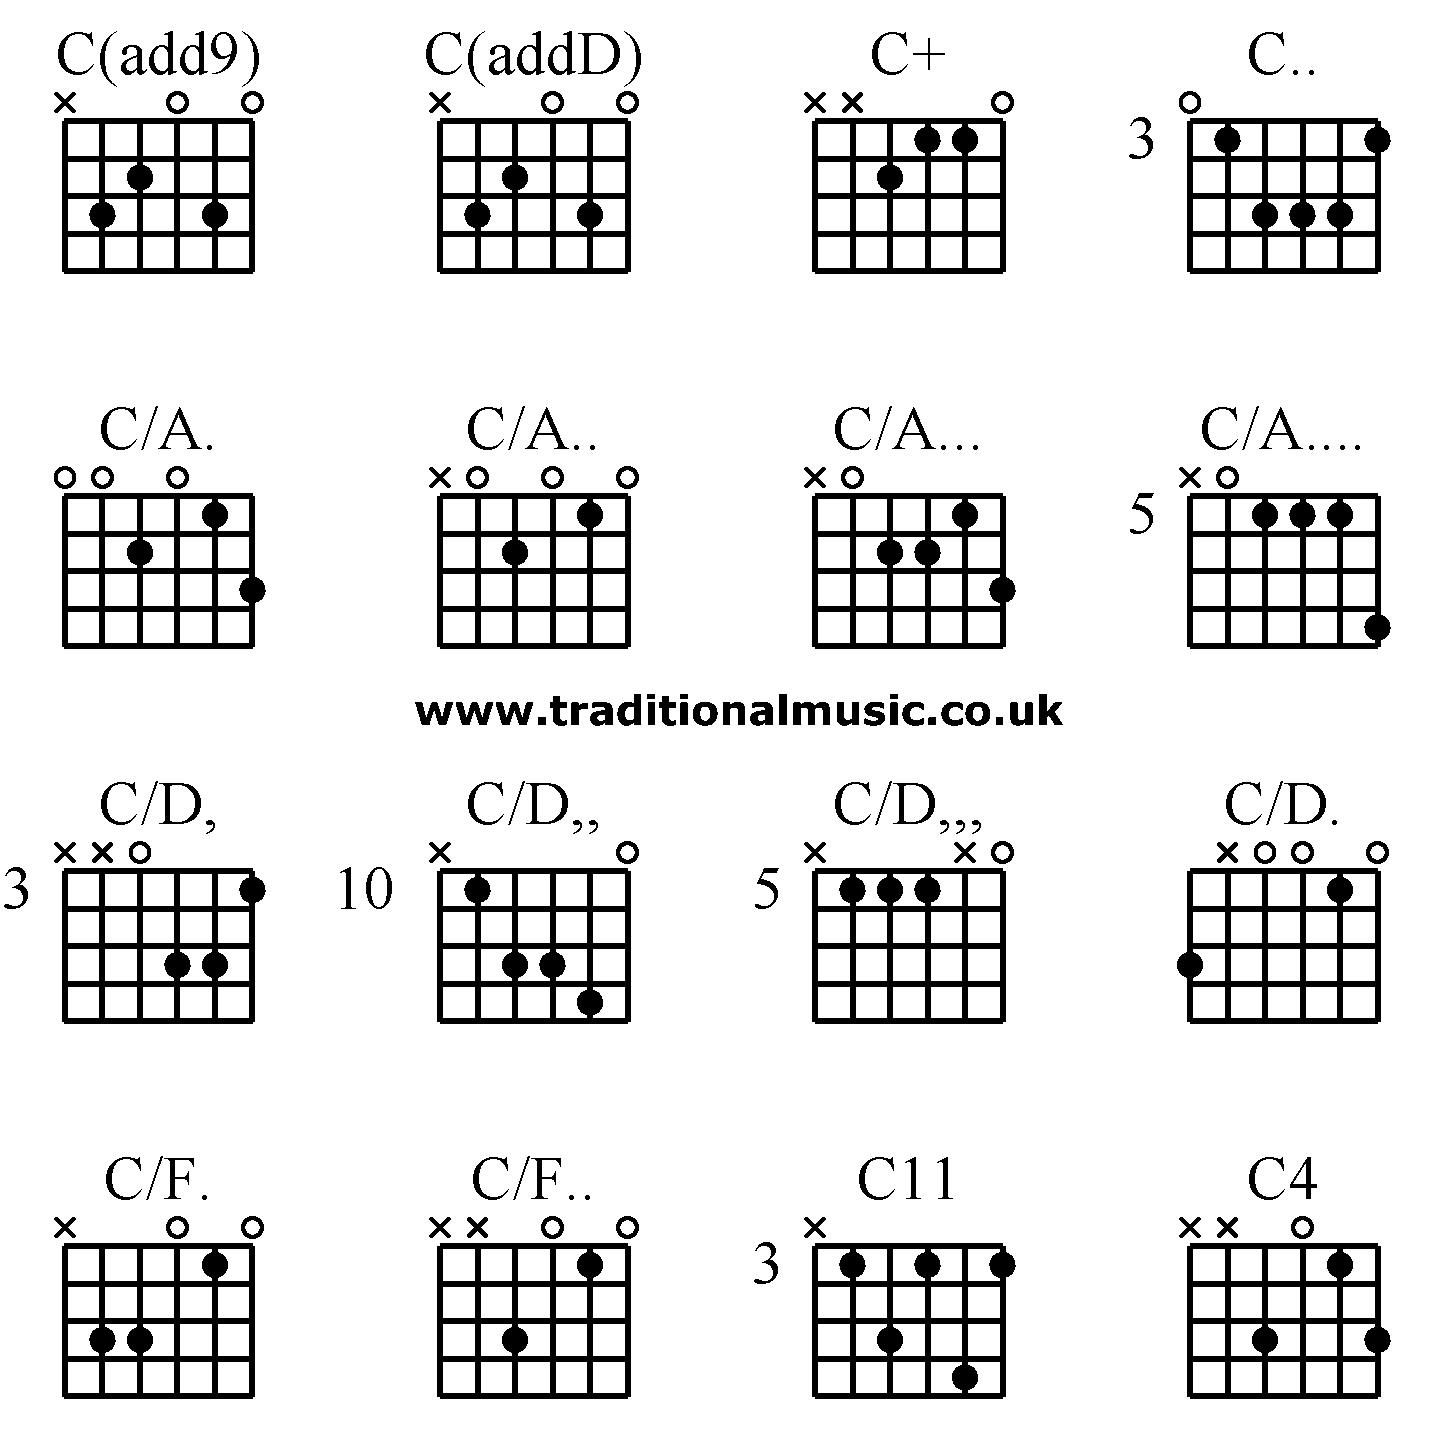 C Chord Guitar Guitar Chords Advanced Cadd9 Caddd C C Ca Ca Ca Ca